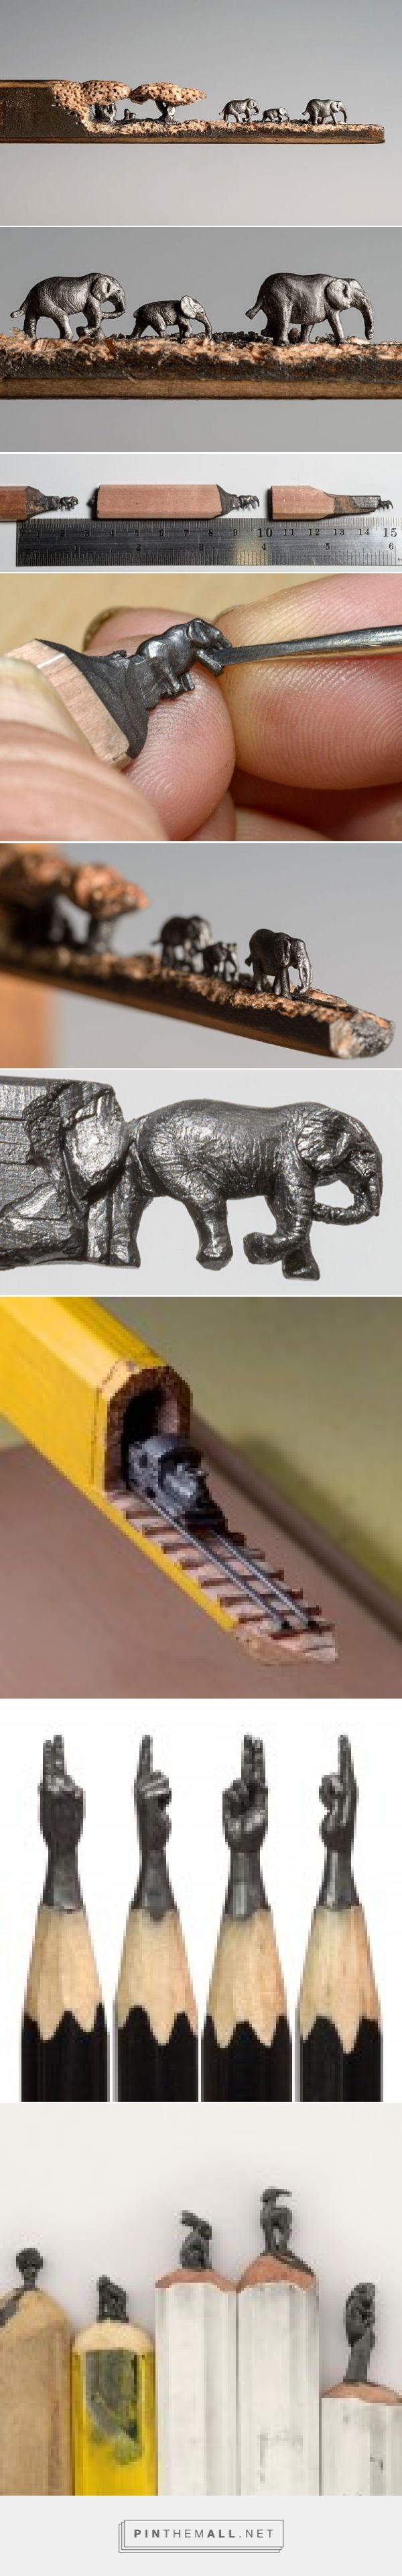 Best Amazing Art Images On Pinterest Pencil Art Pencil - 8 astonishing tiny sculptures carved on the tips of pencils